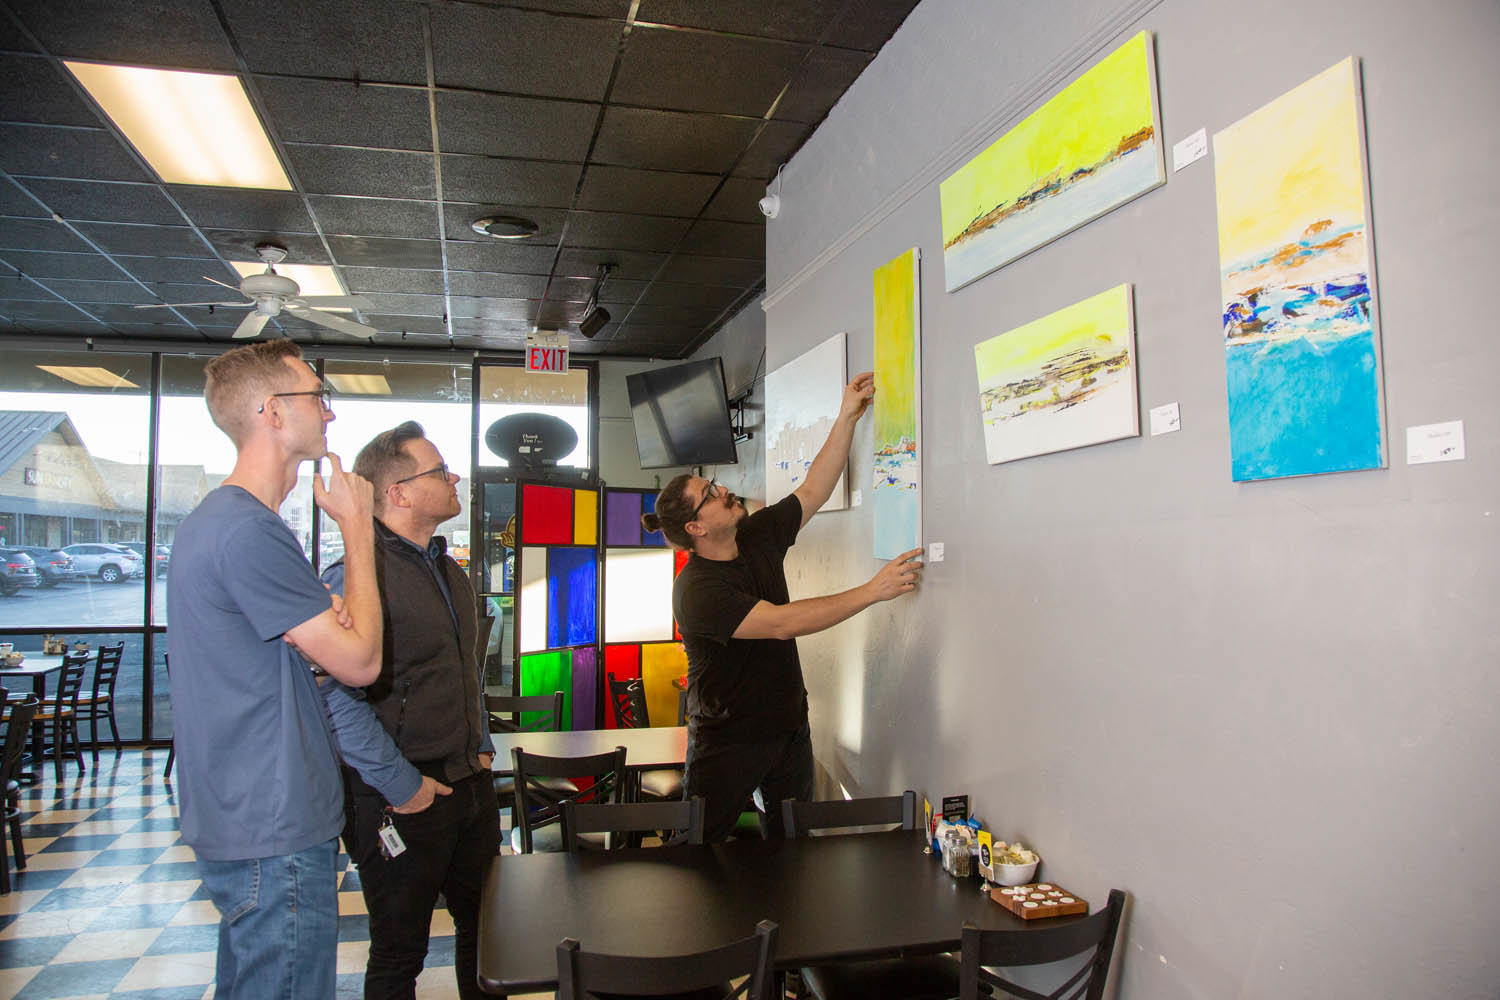 ARTISTIC IMPRESSION: Springfield Diner owner Omer Onder talks improvements at the restaurant with Longitude's Dustin Myers and Jeremy Wells as he adjusts new artwork on display.